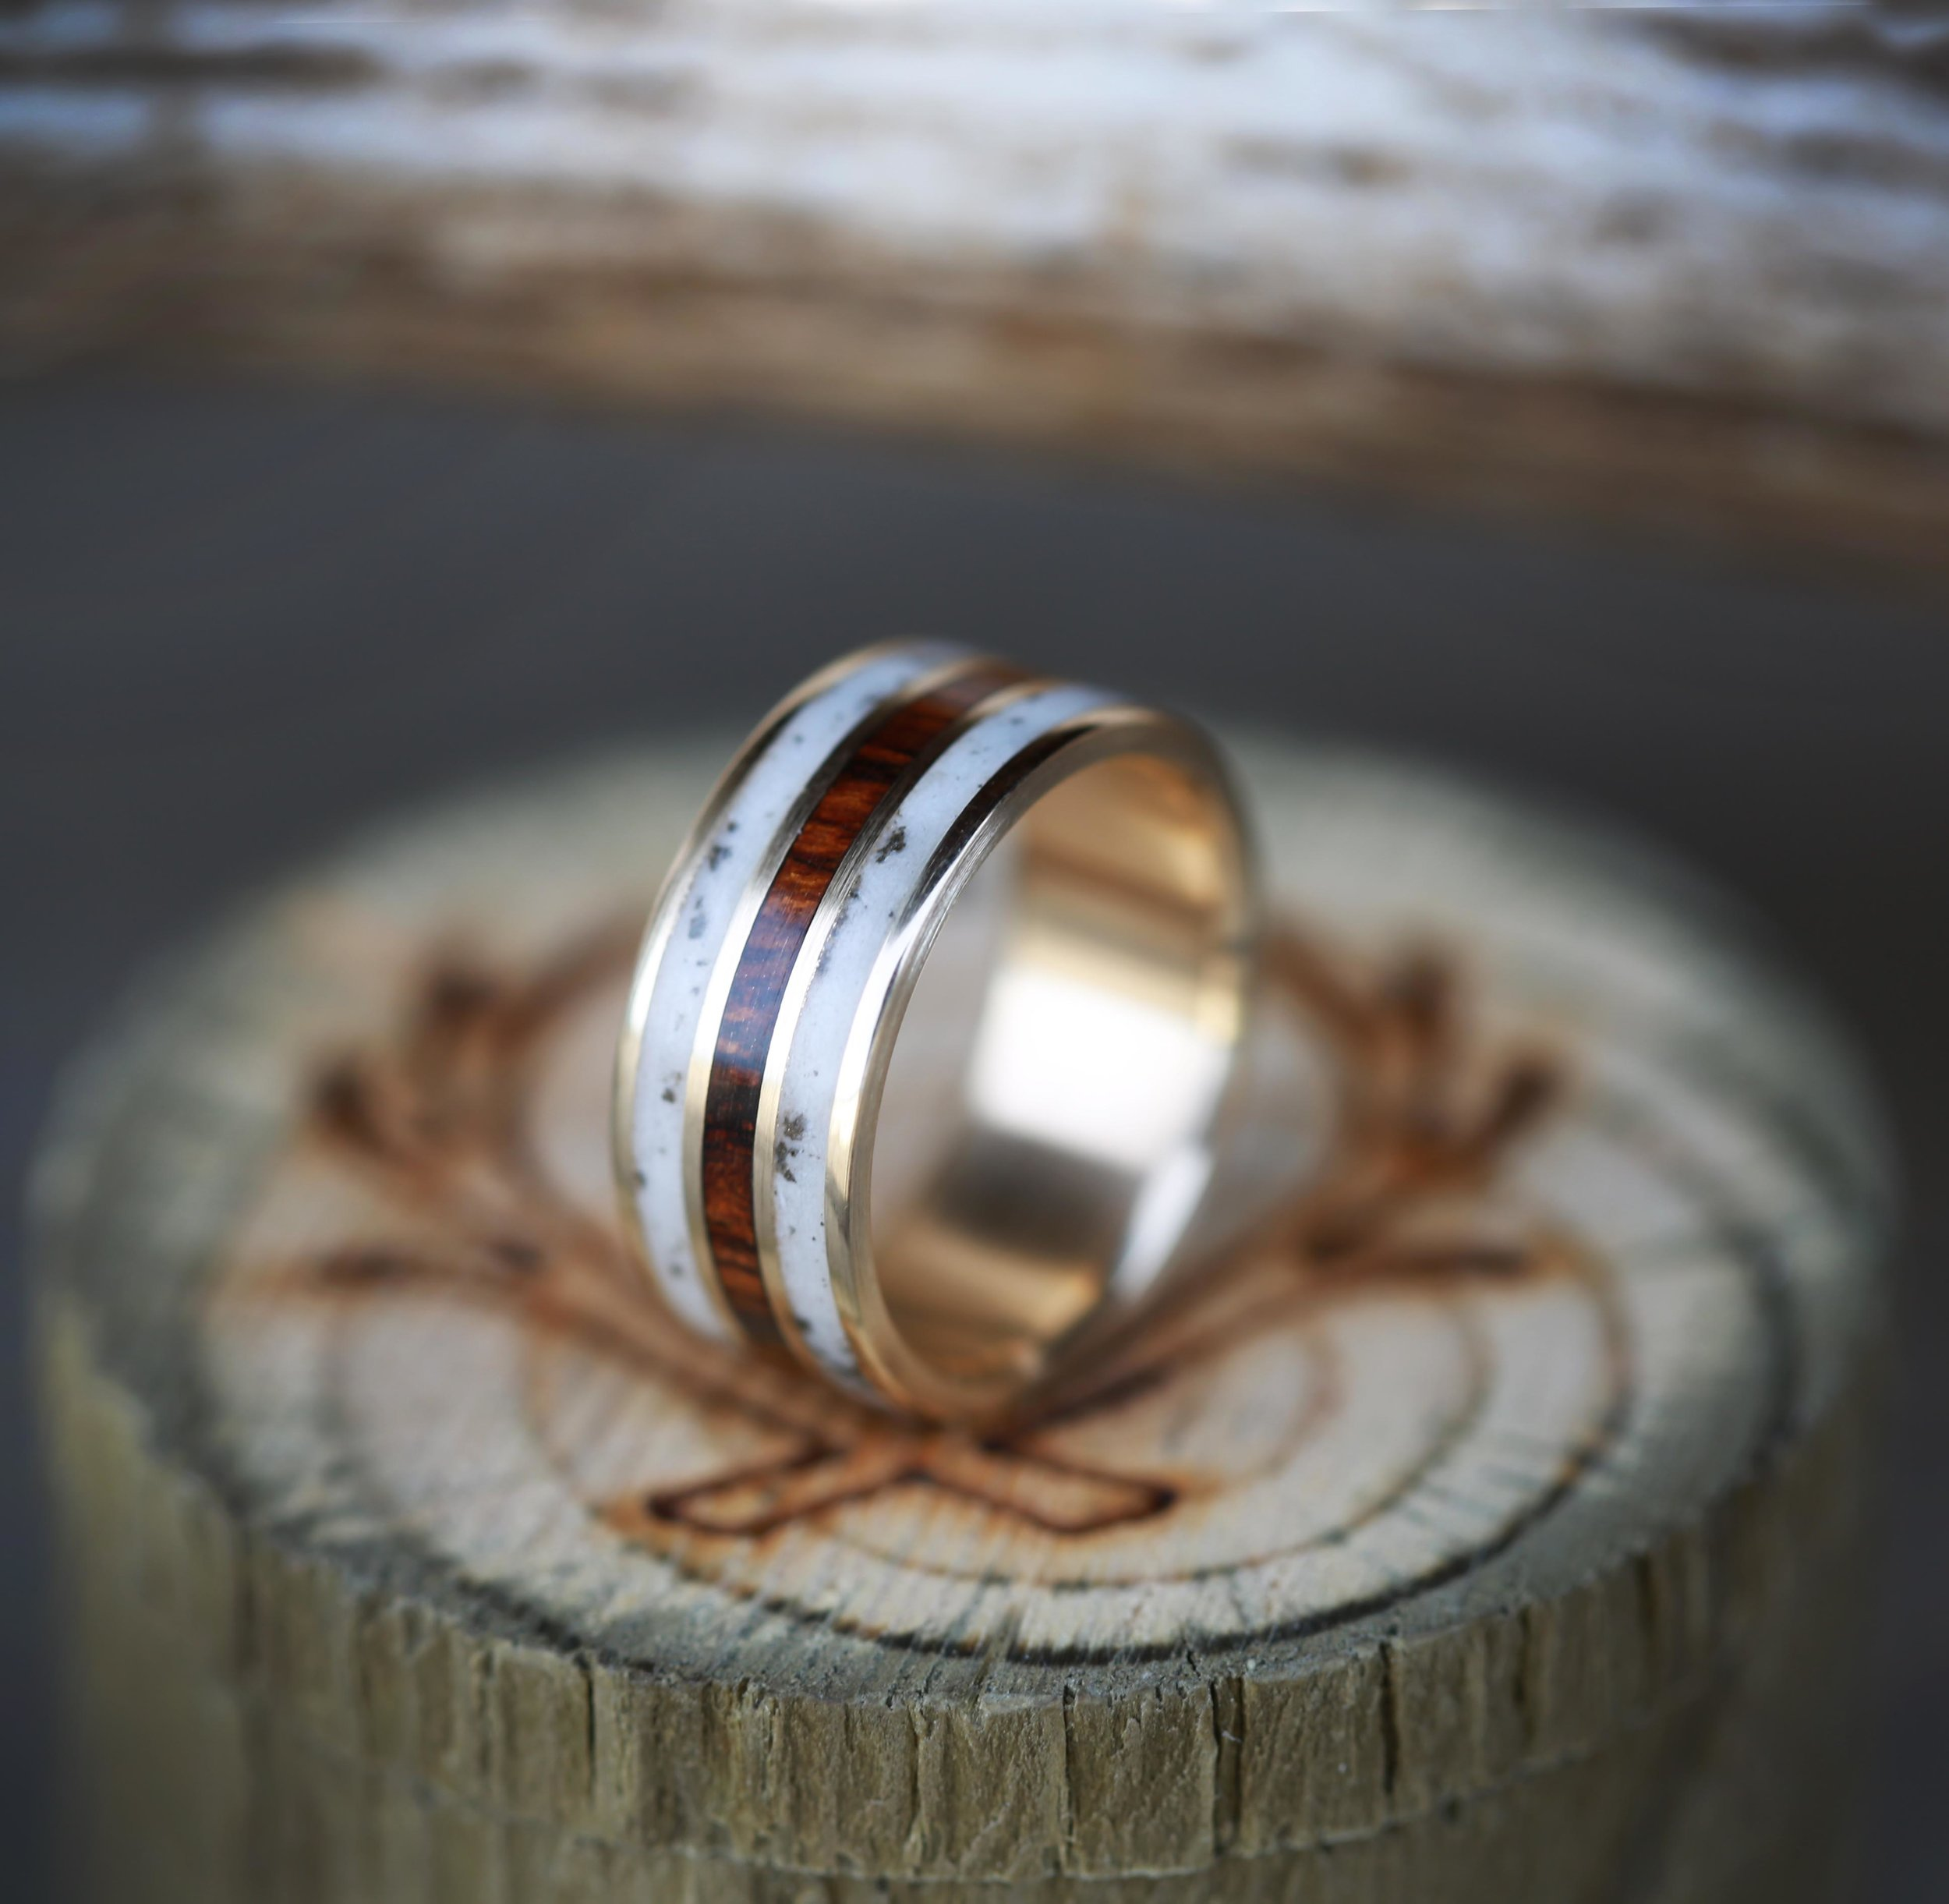 products antler wedding band Ironwood elk antler wedding band with inlays of ironwood elk antler custom made